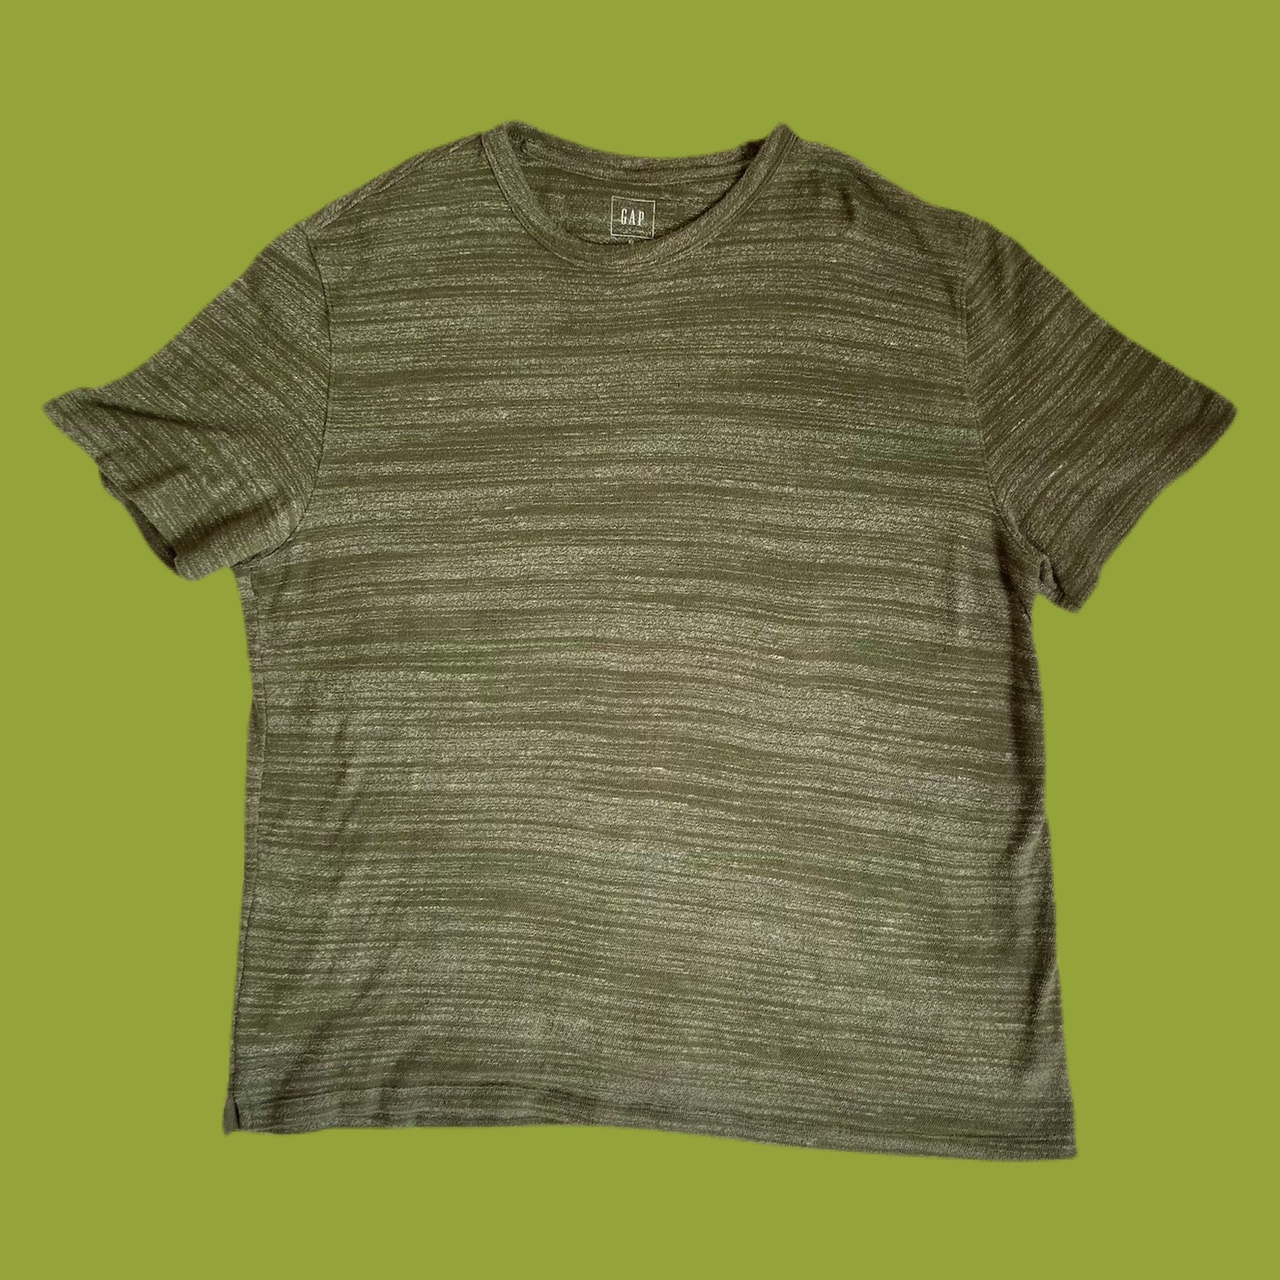 Product Image 1 - Olive Green T-Shirt Crew Neck